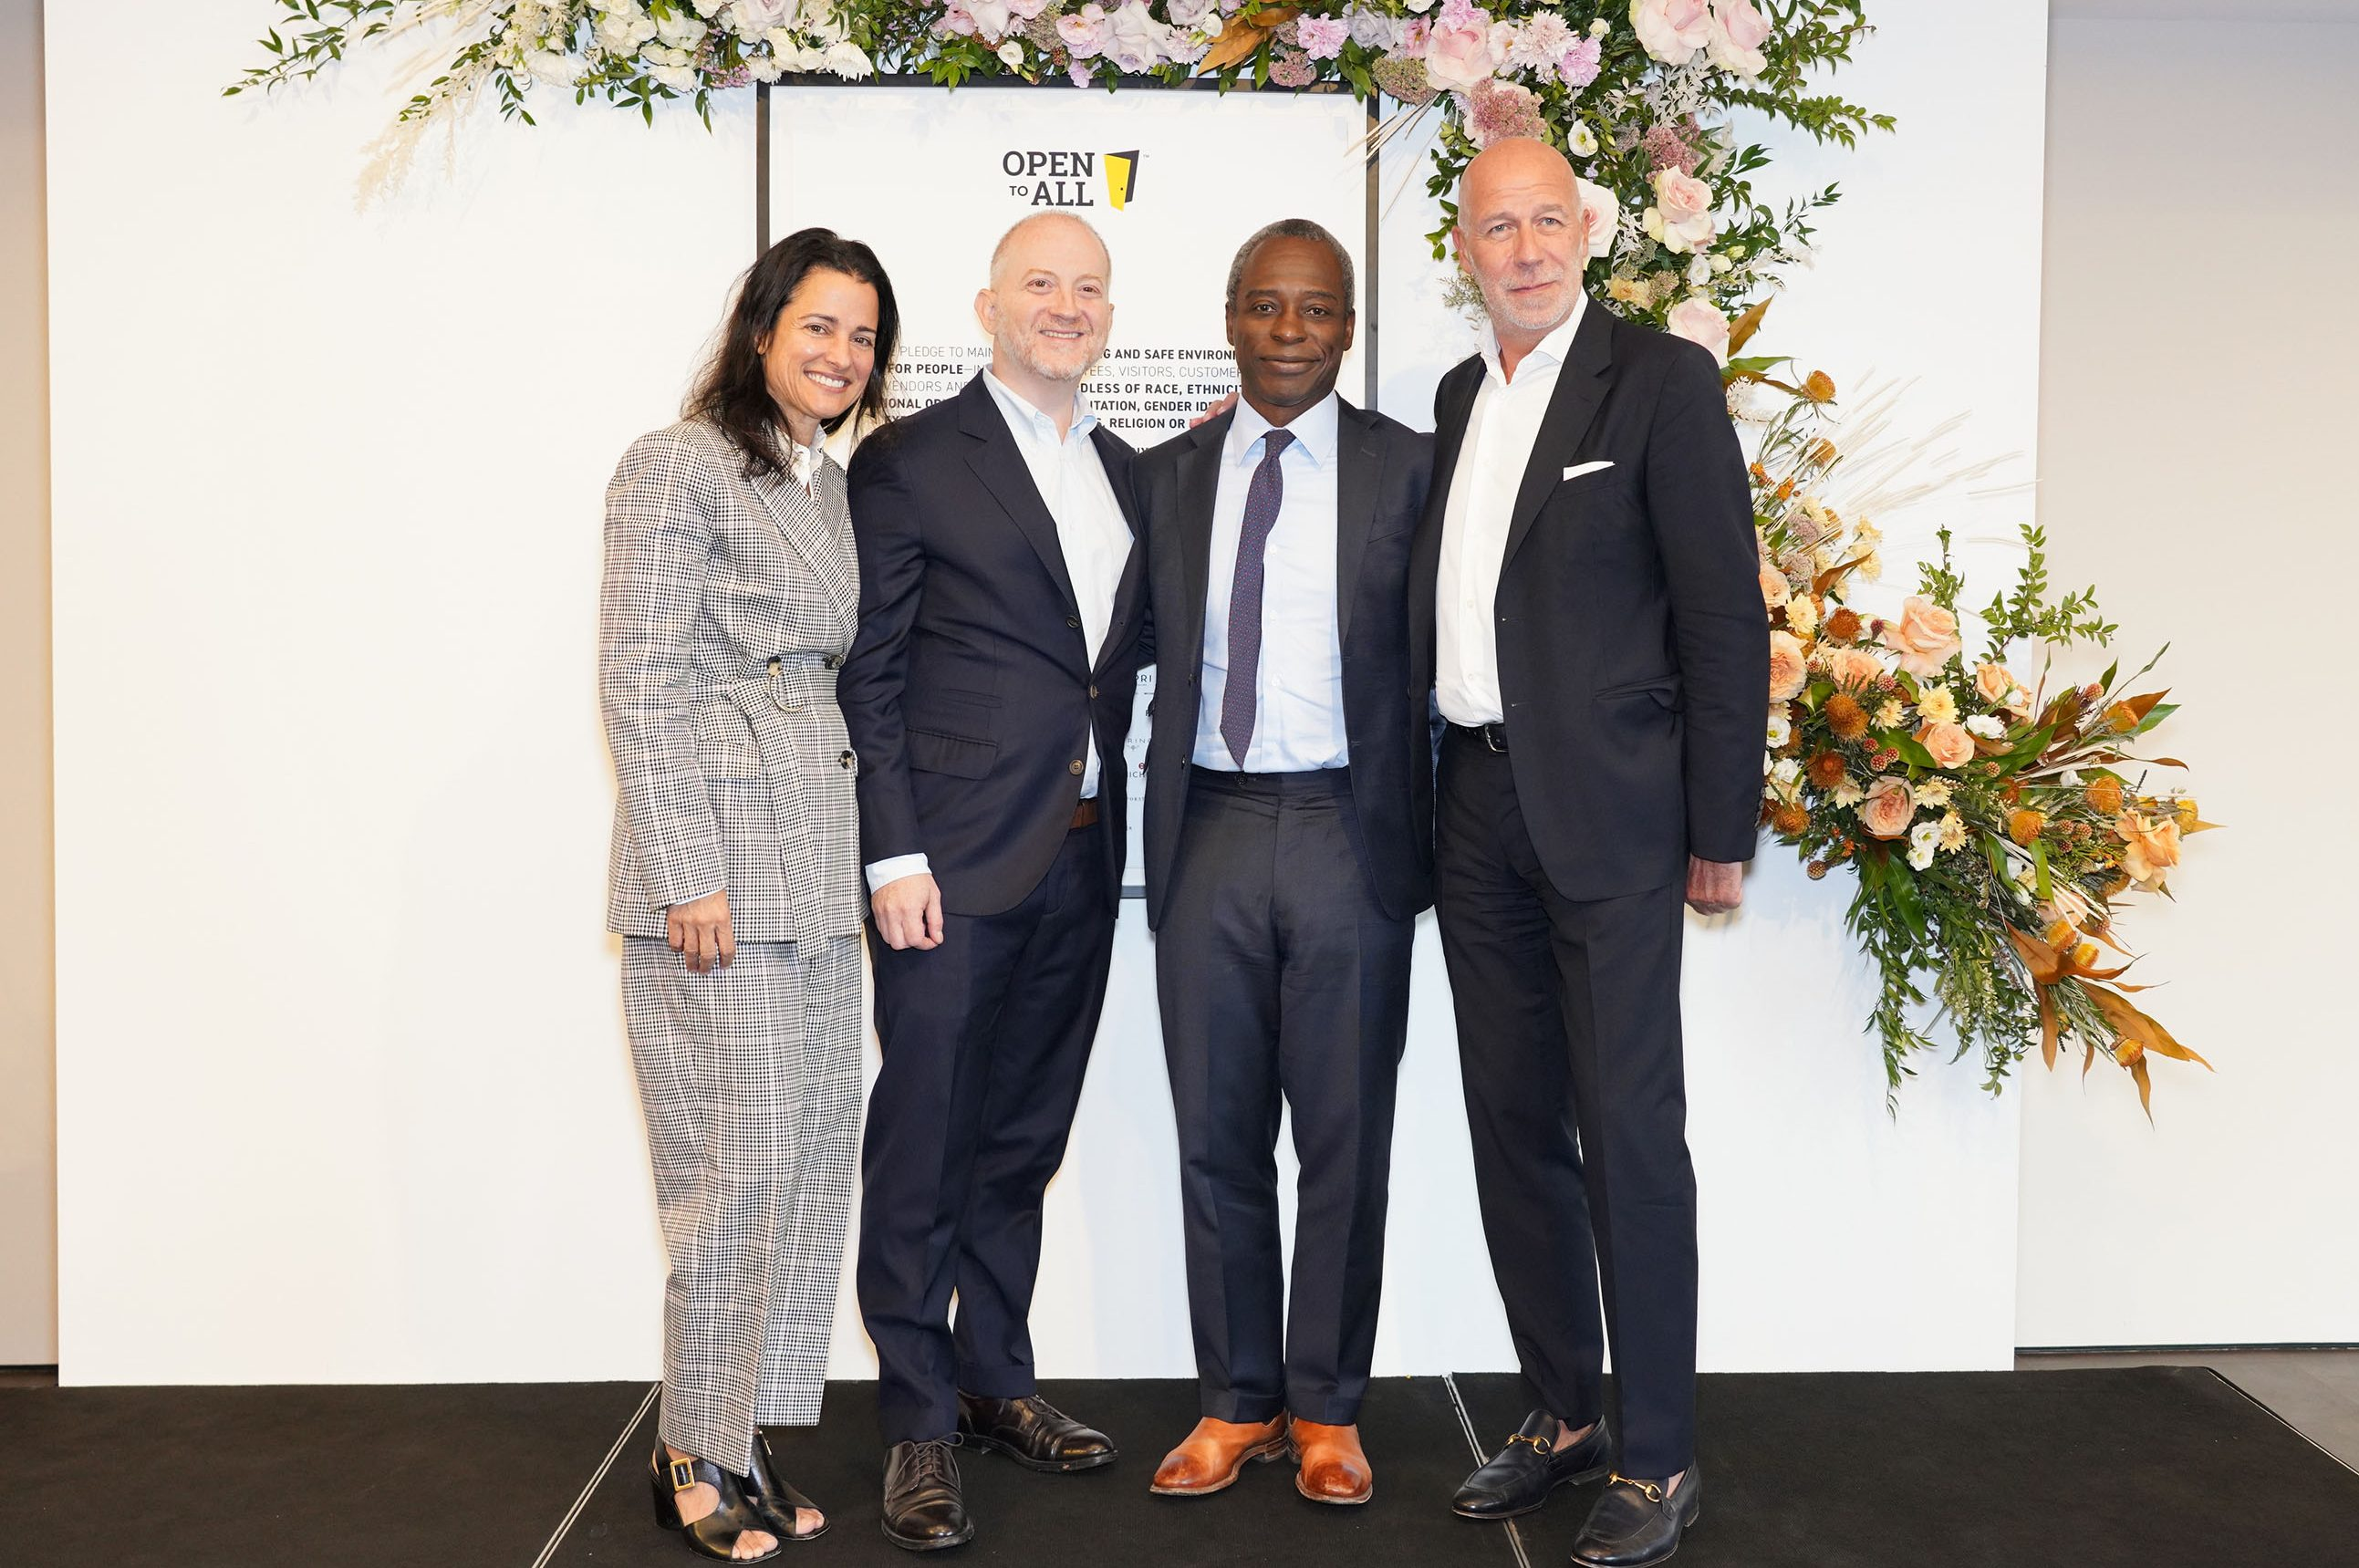 Tapestry's senior leadership team. From left, Anna Bakst, ceo and brand president of Kate Spade New York, Joshua Schulman, left, CEO and president of Coach, Jide Zeitlin, CEO of Tapestry and Eraldo Poletto, ceo and brand president of Stuart Weitzman.